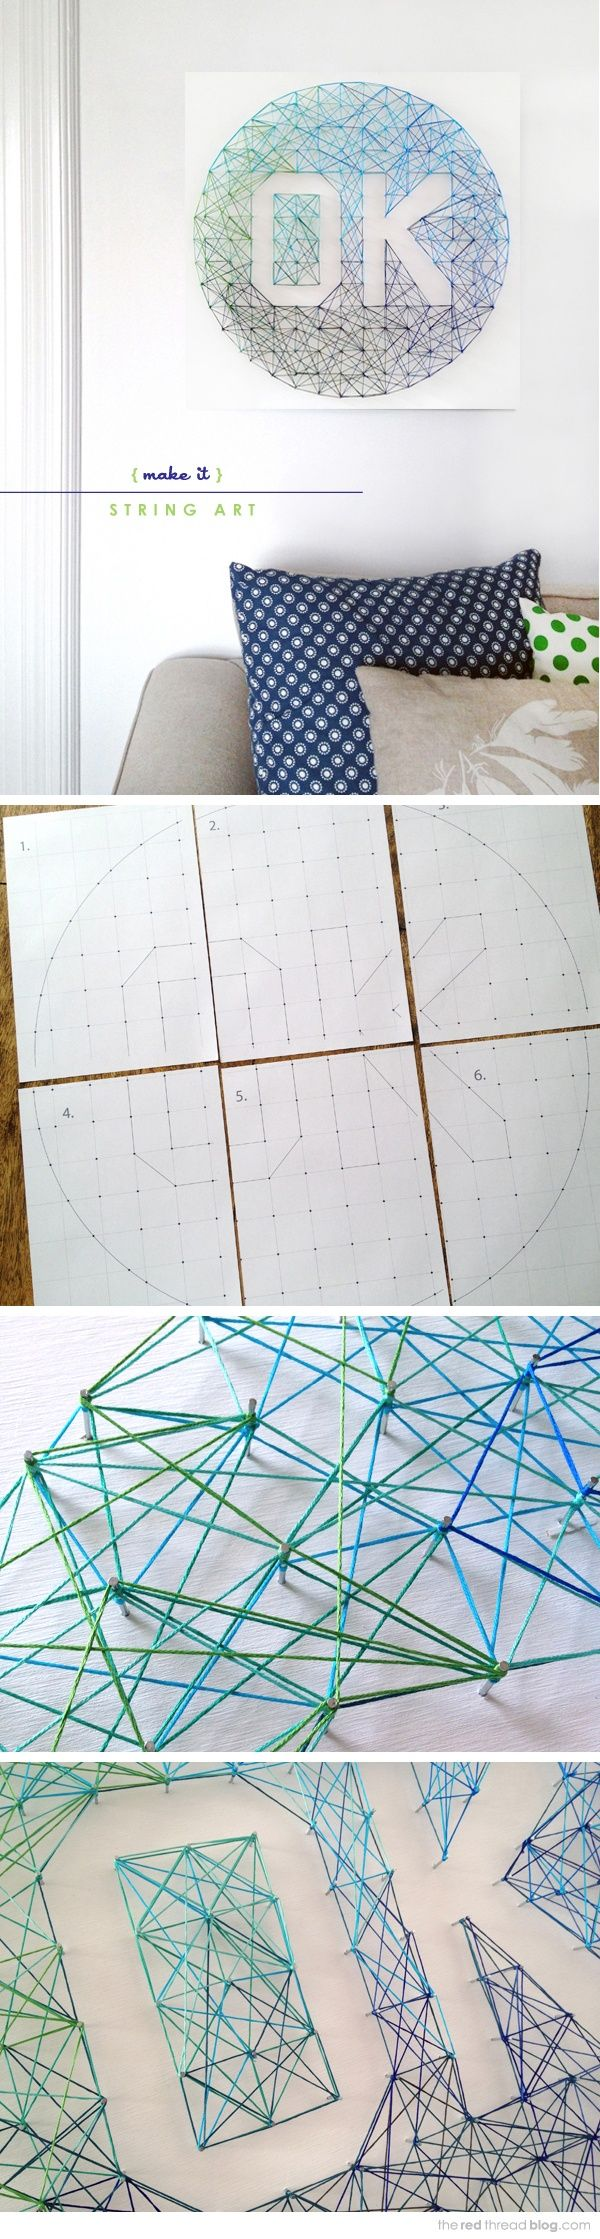 DIY string art tutorial & free printable template - the red thread